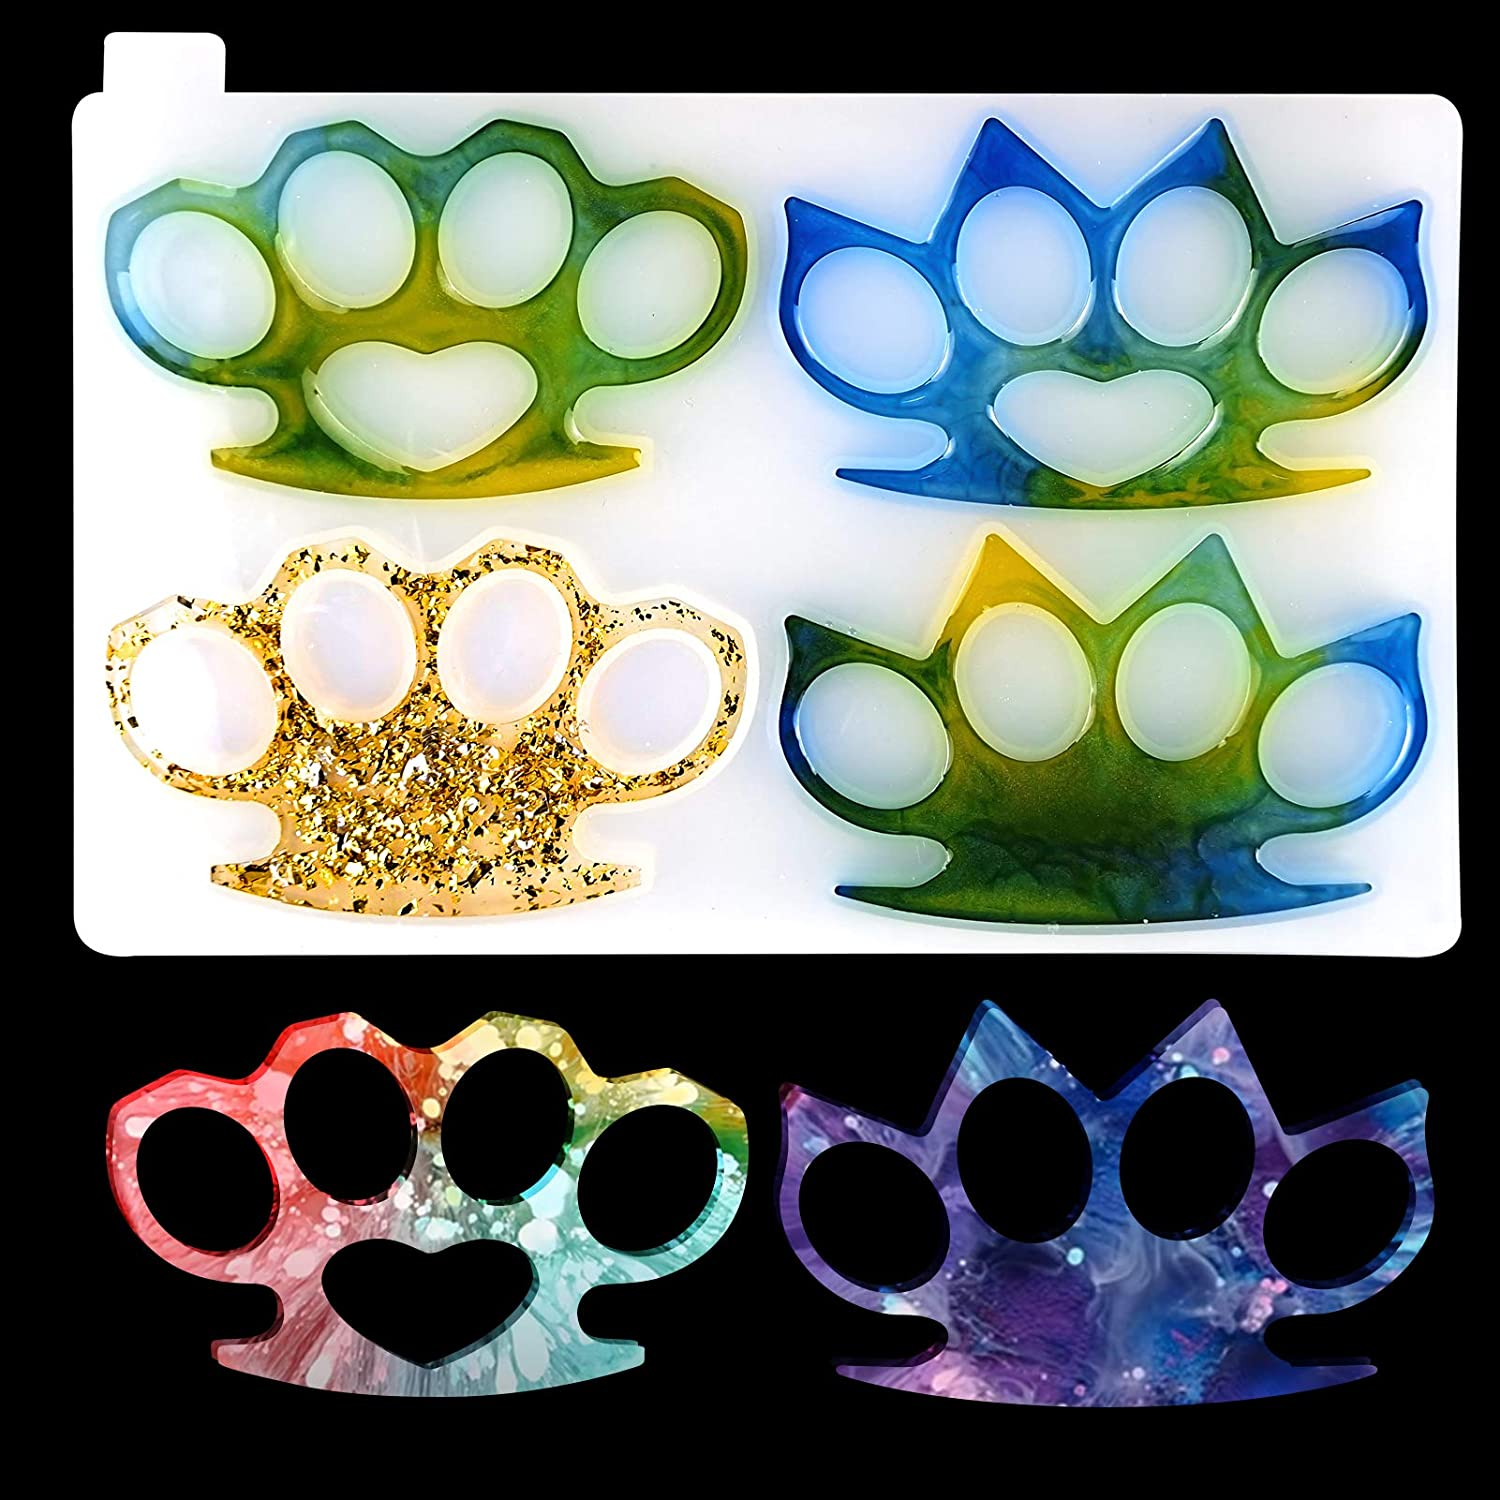 brightsen Brass Knuckles Silicone Casting Mold for Epoxy Resin Polymer Clay Casting Art Molds Reusable DIY Craft Resin Mold